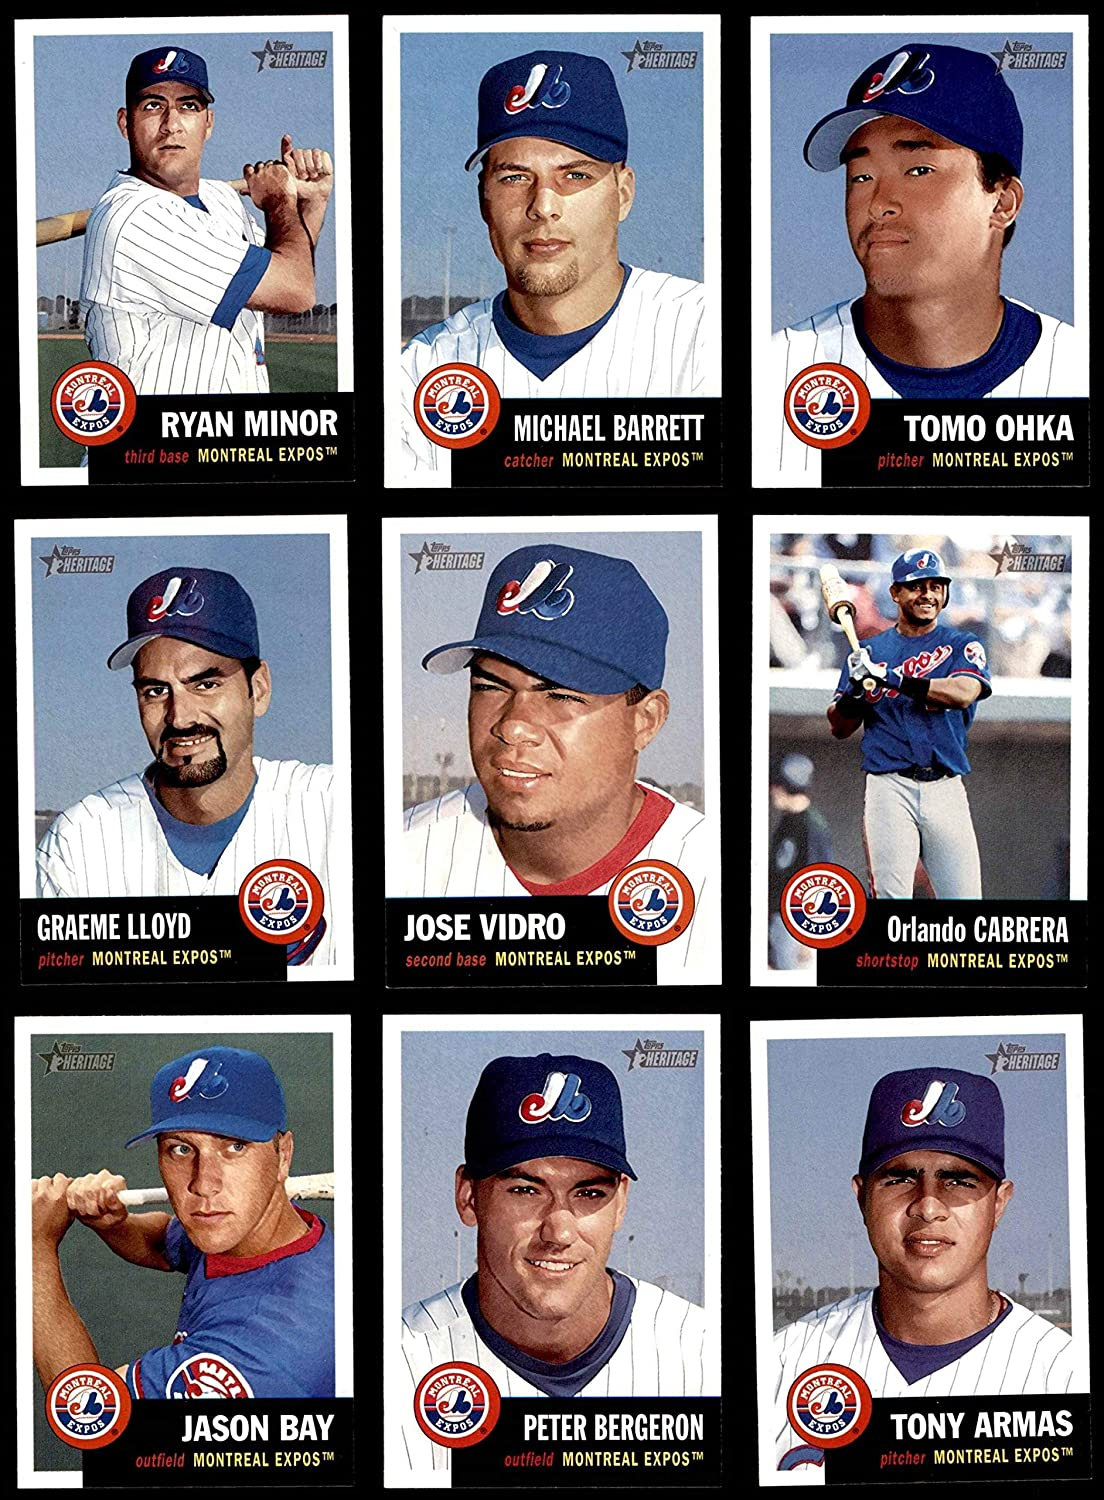 2002 Topps Heritage Montreal Expos Team Set Montreal Expos (Baseball Set) Dean's Cards 8 - NM/MT Expos 91LtvKxlyvL